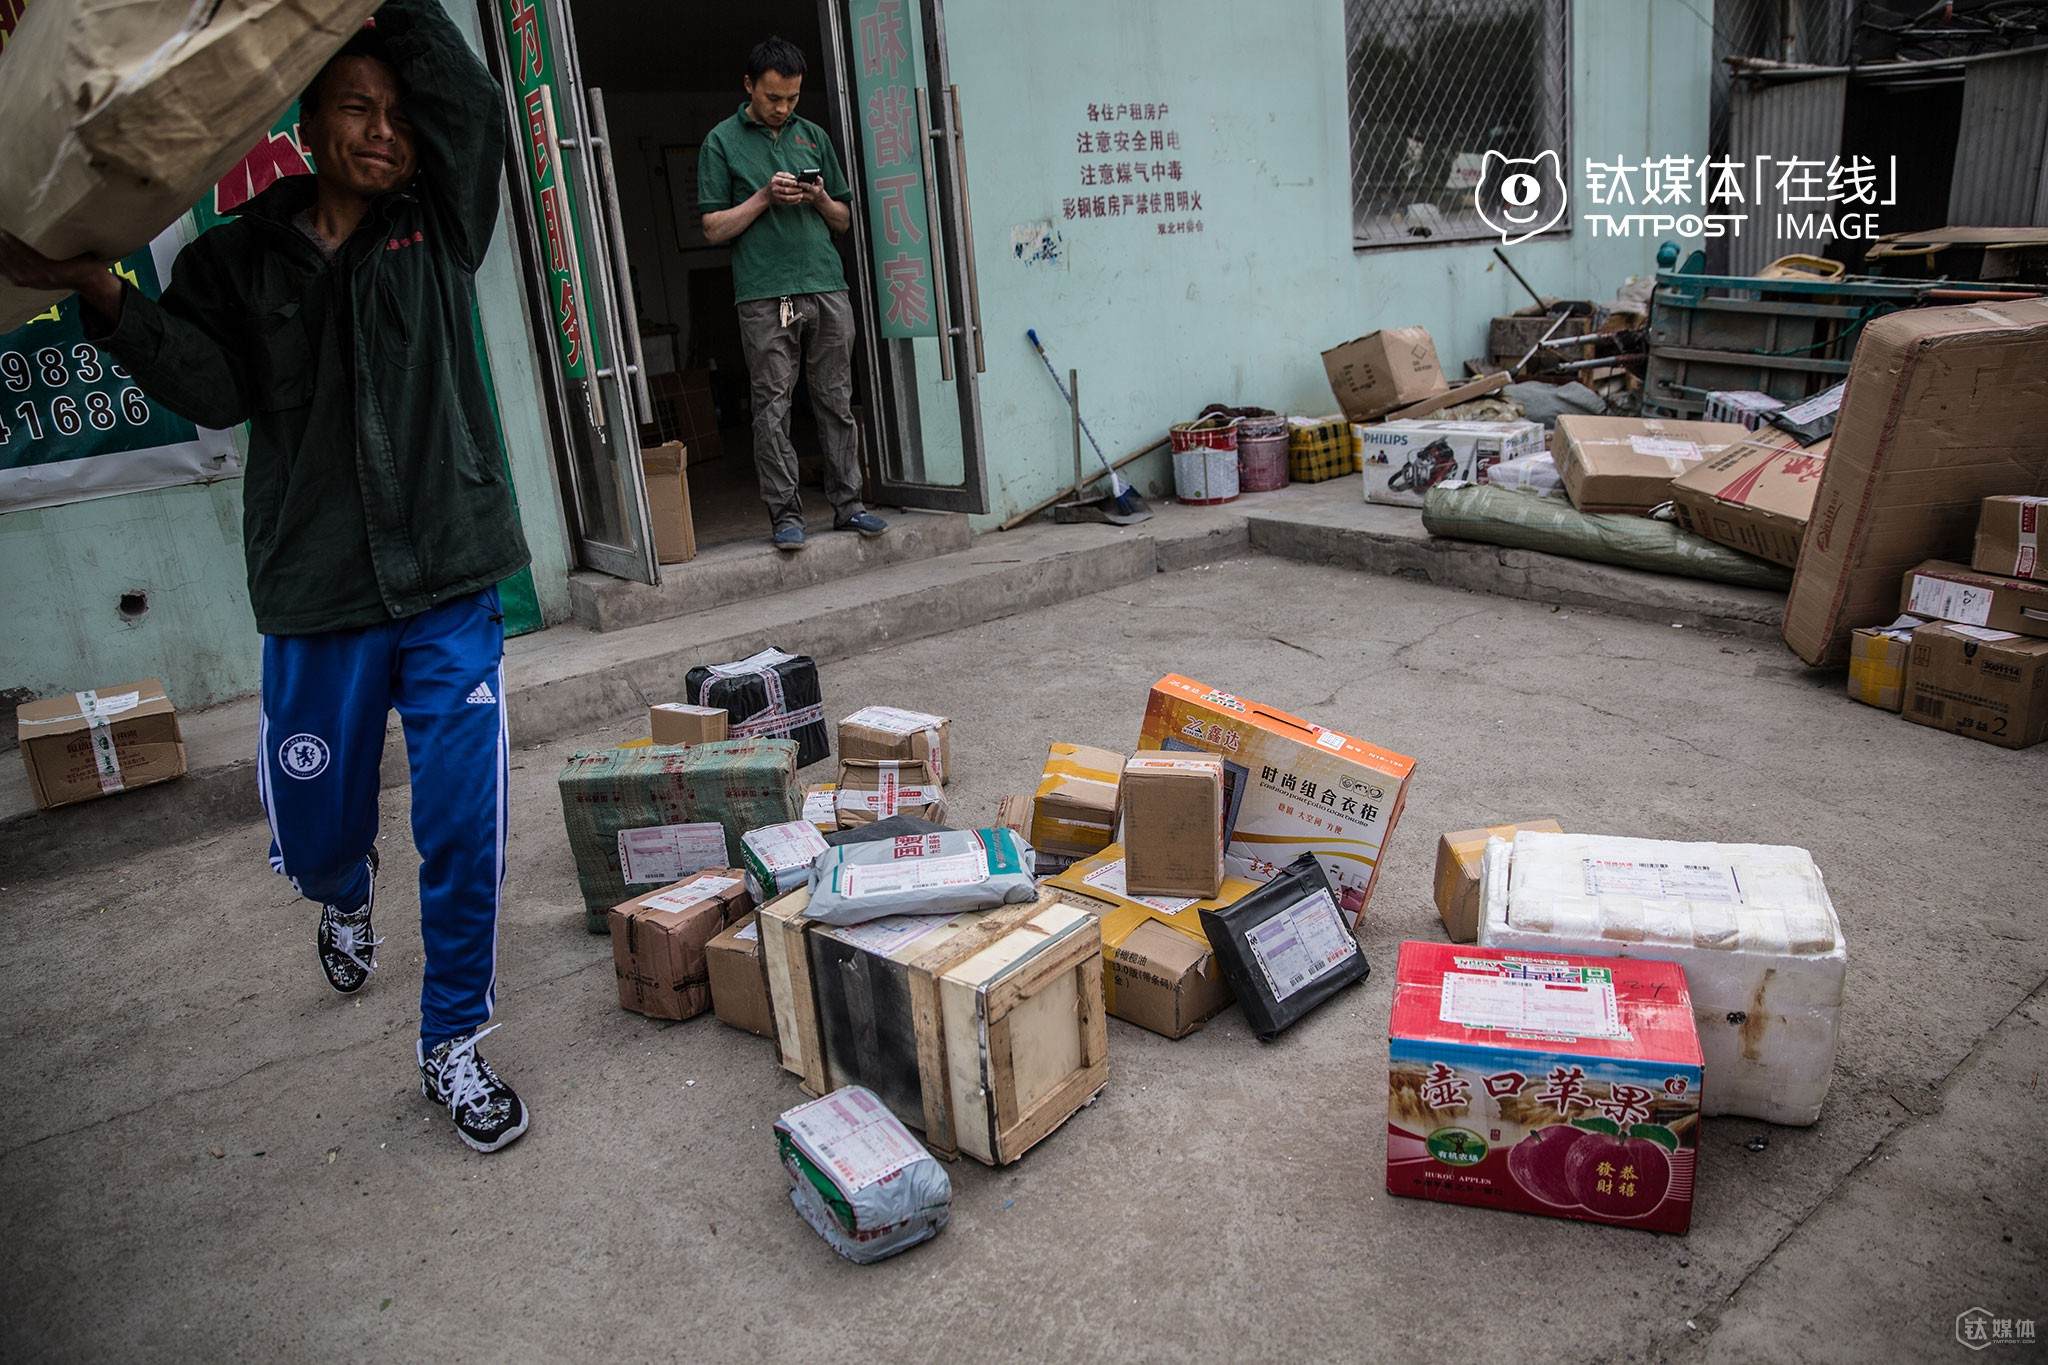 Lufei is one of the 3 deliverymen in this private-owned allocating center.